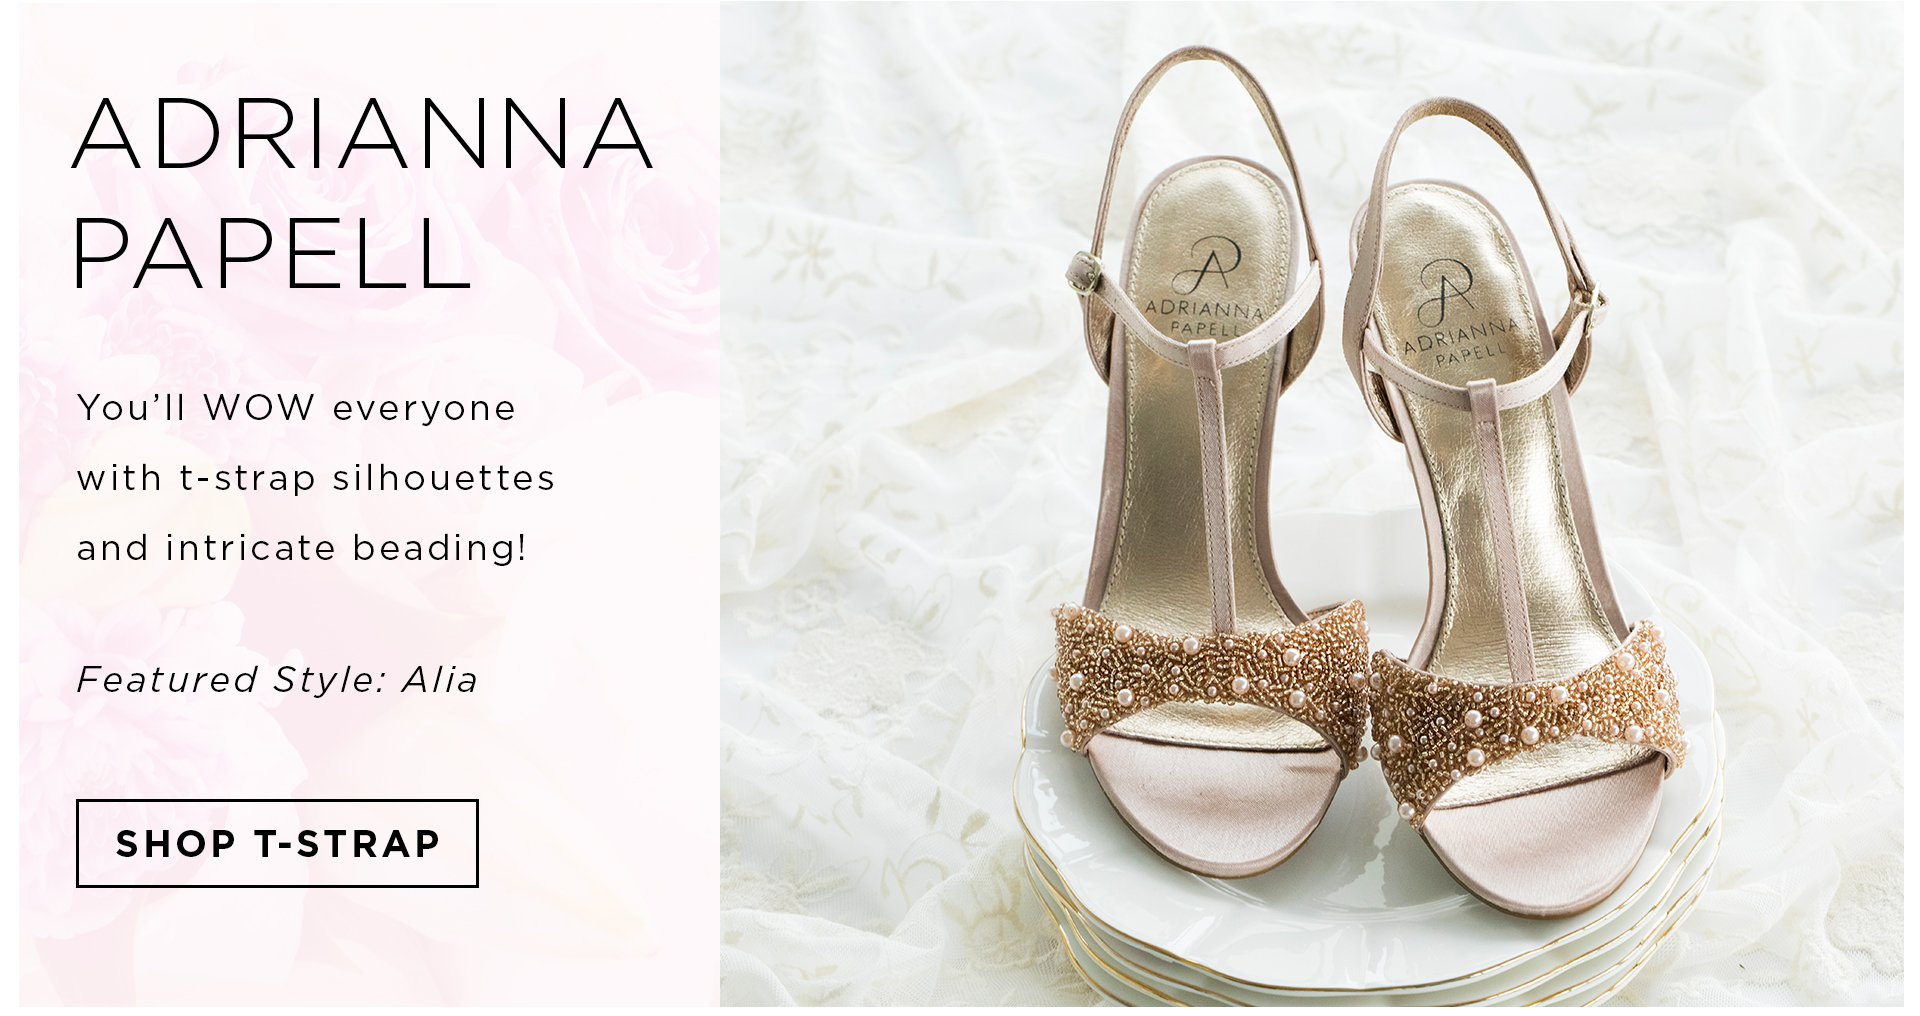 Wedding shoes bridal flats sandals heels more zappos header wedding footwear favorites badgley mischka shop nina adrianna papell junglespirit Image collections